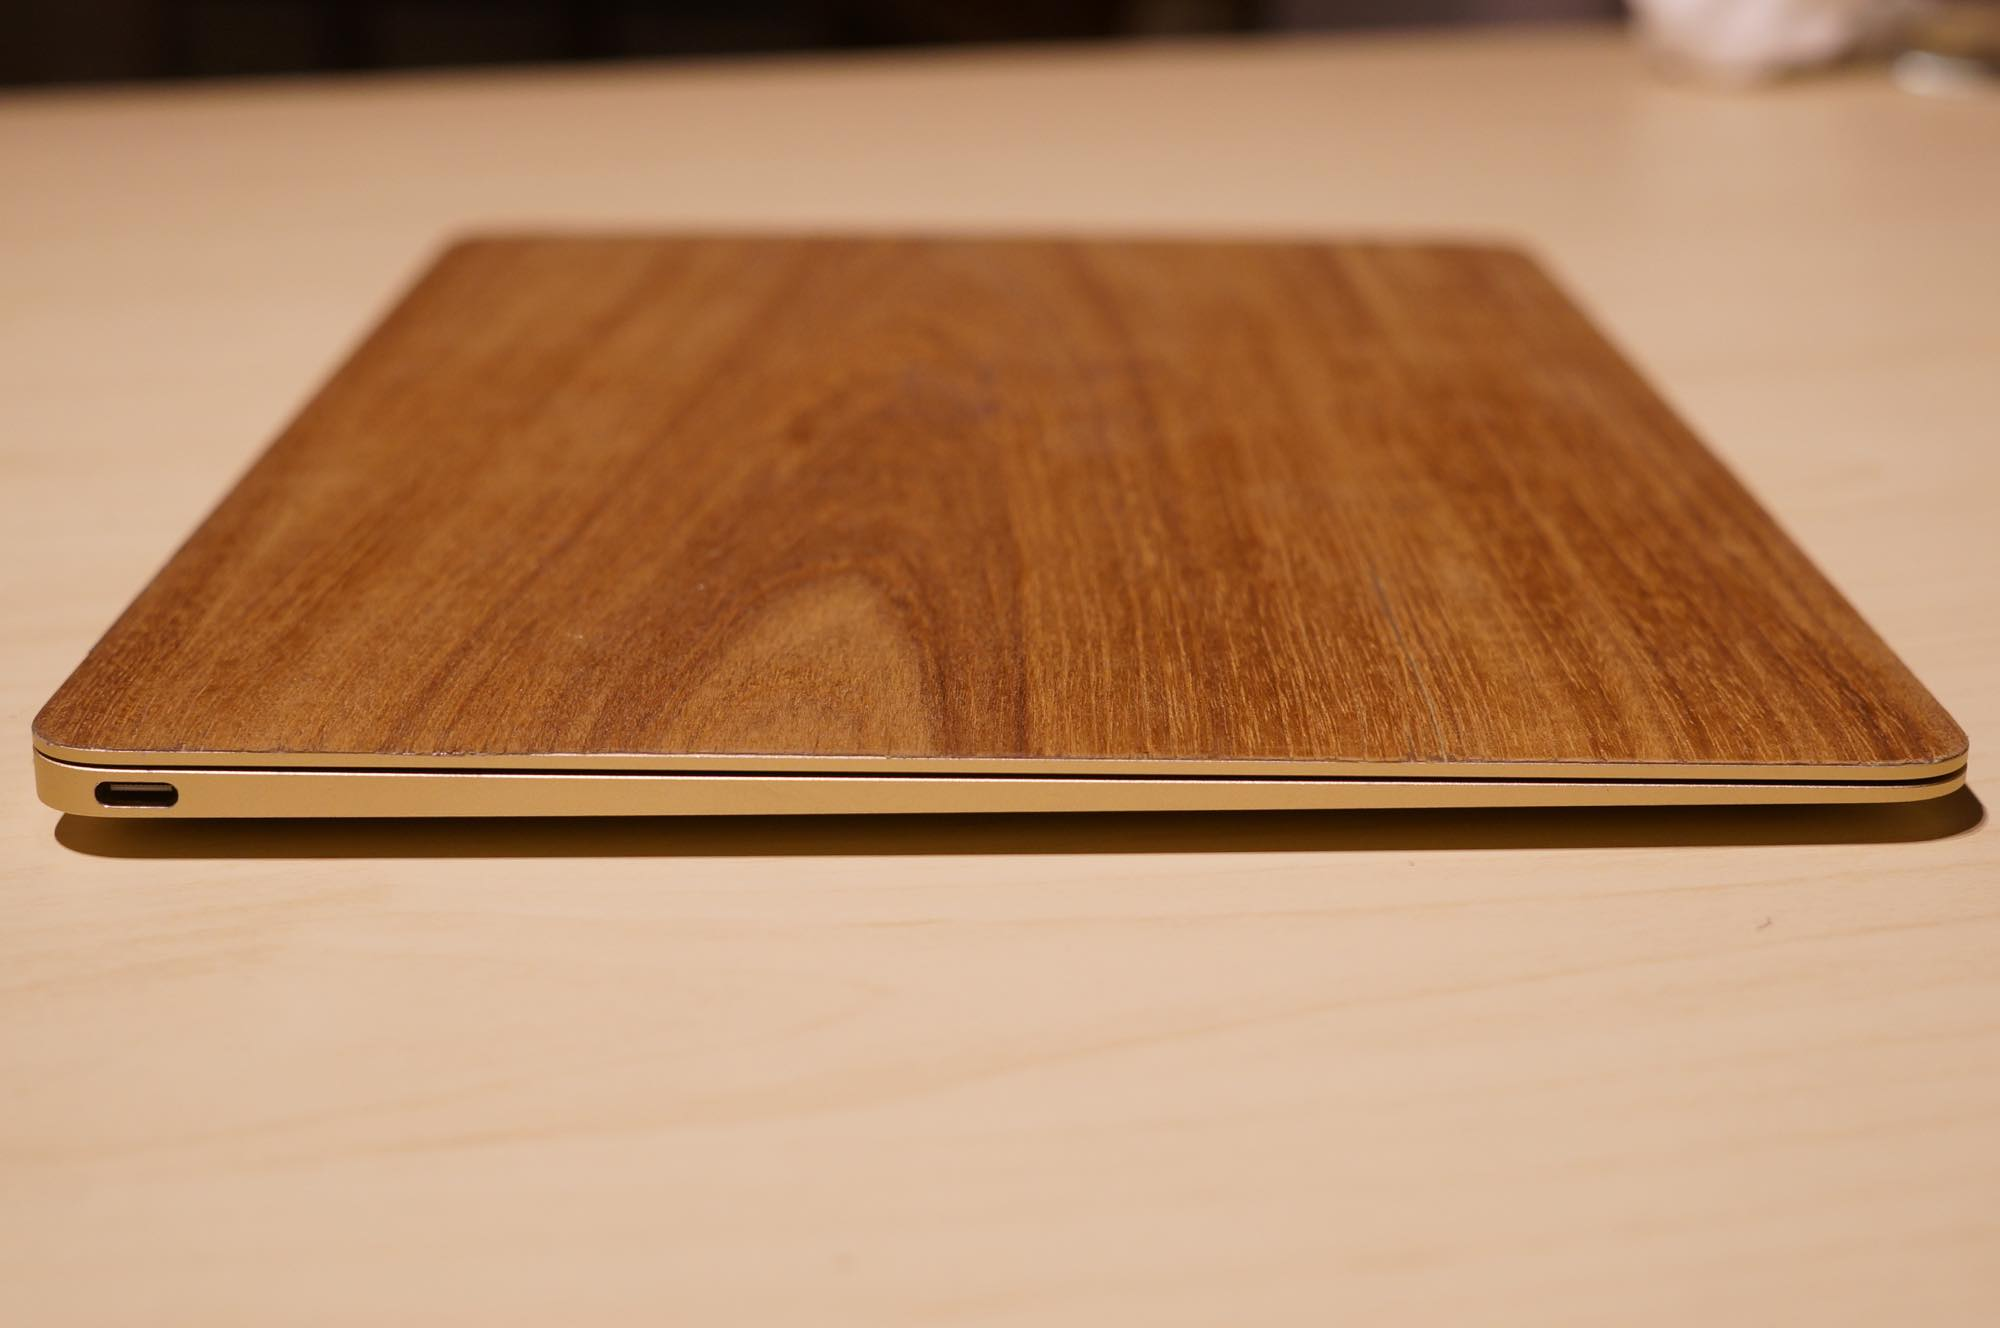 macbook-realwood-skin13